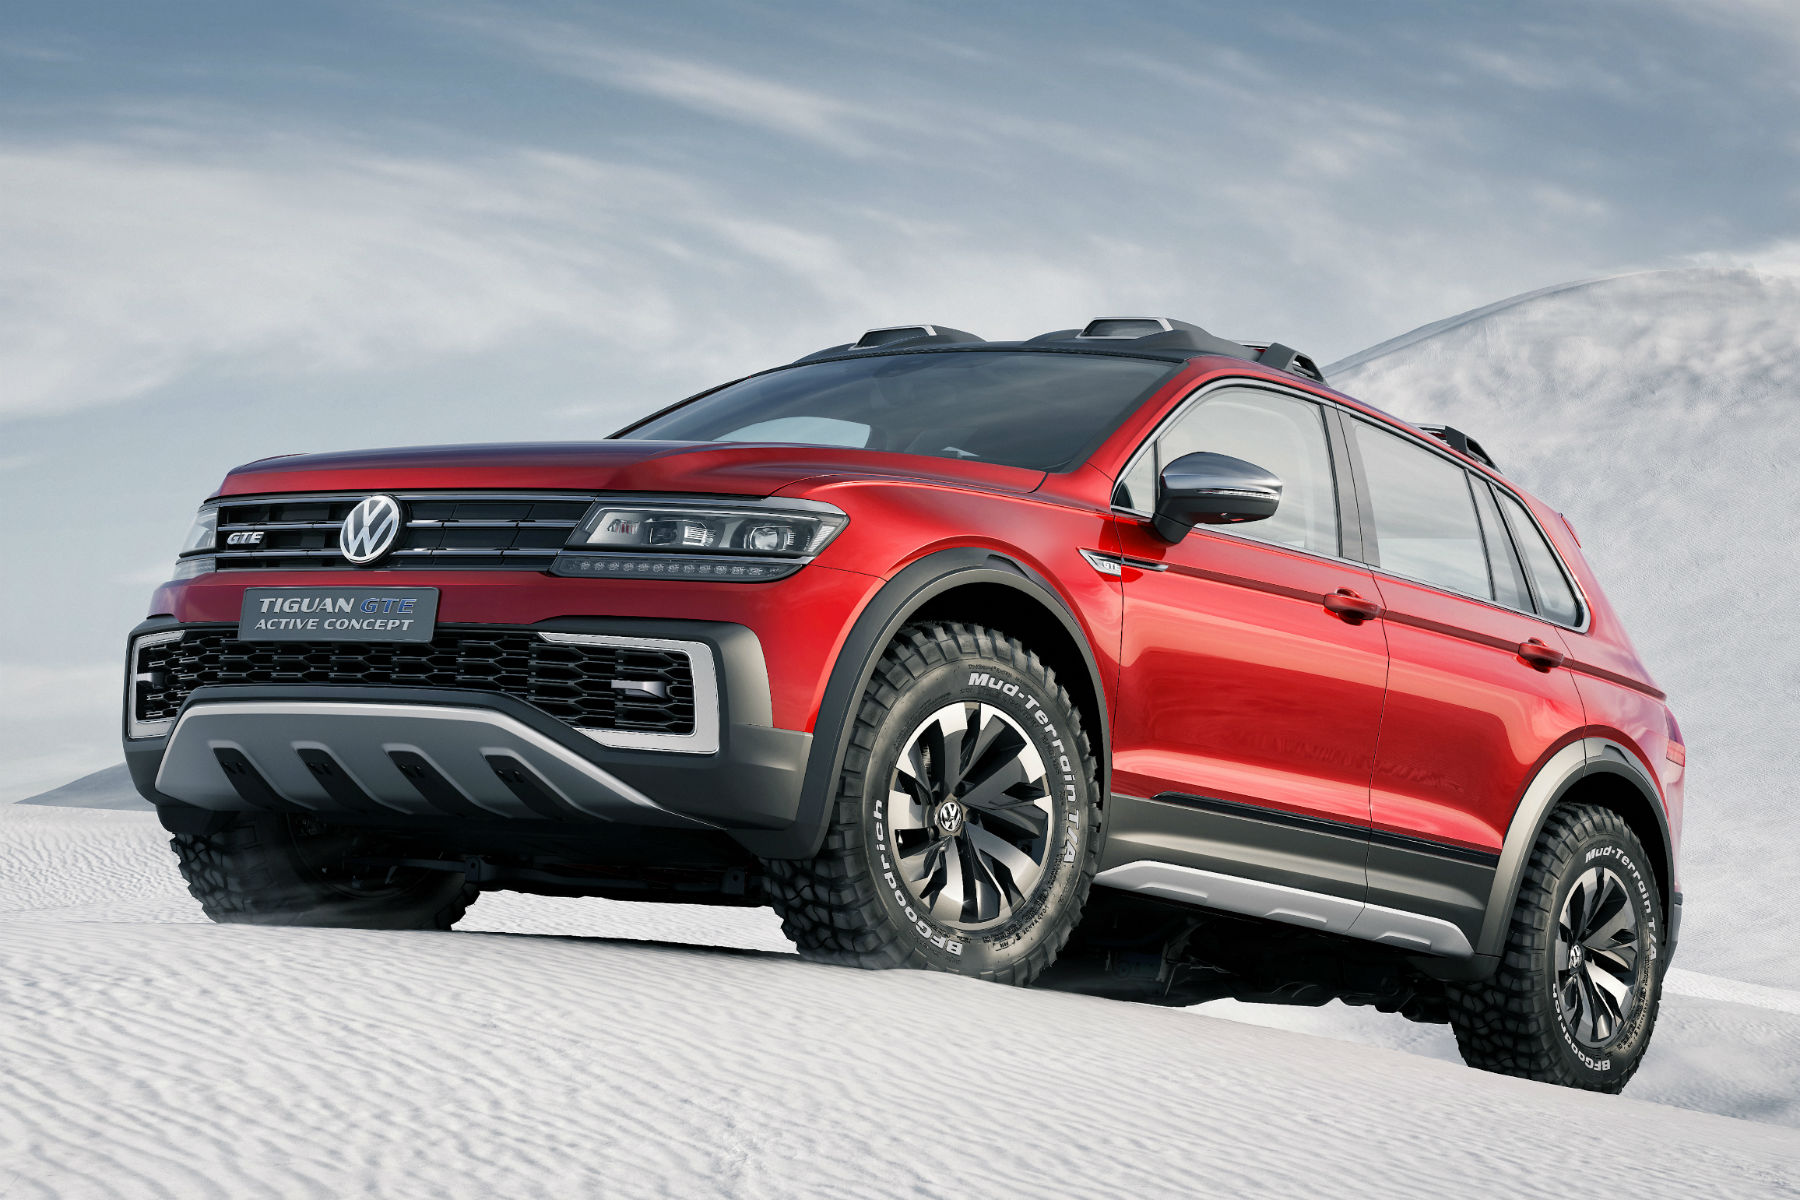 Detroit 2016: This is what a VW Tiguan GTE looks like as a serious off-roader